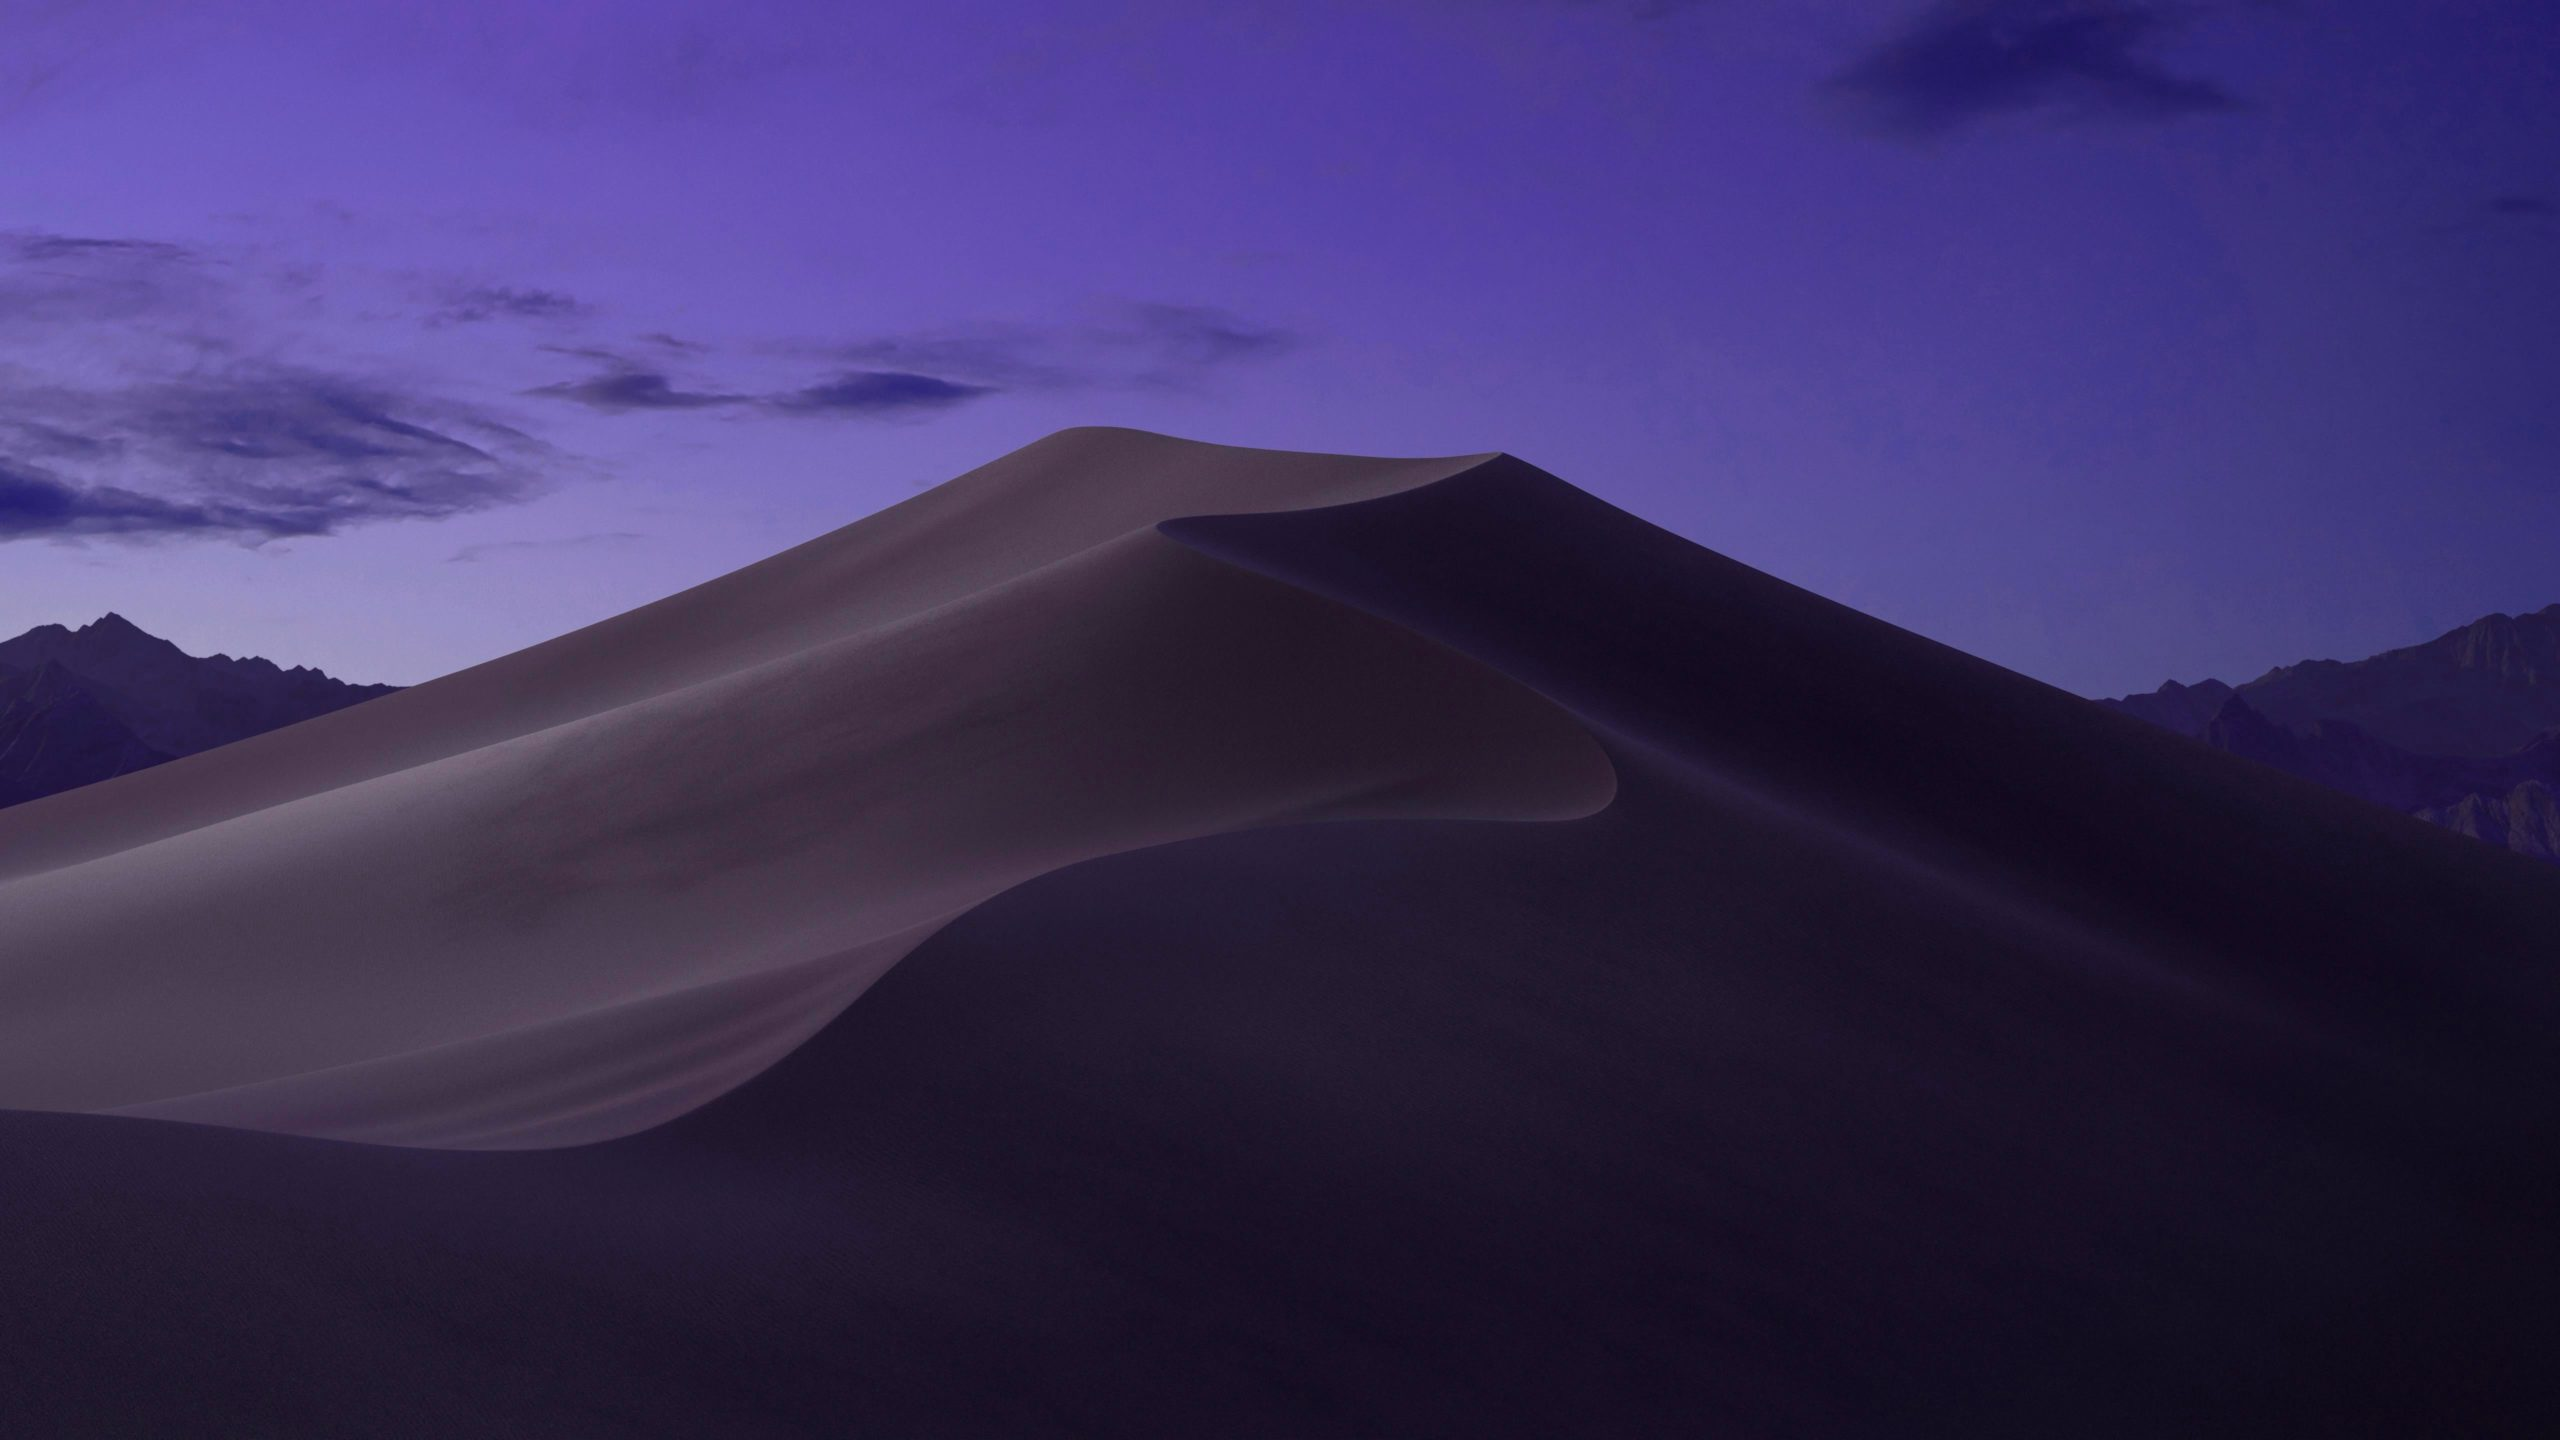 Download A More Purple Ish Version Of The Mac Os Mojave Wallpaper